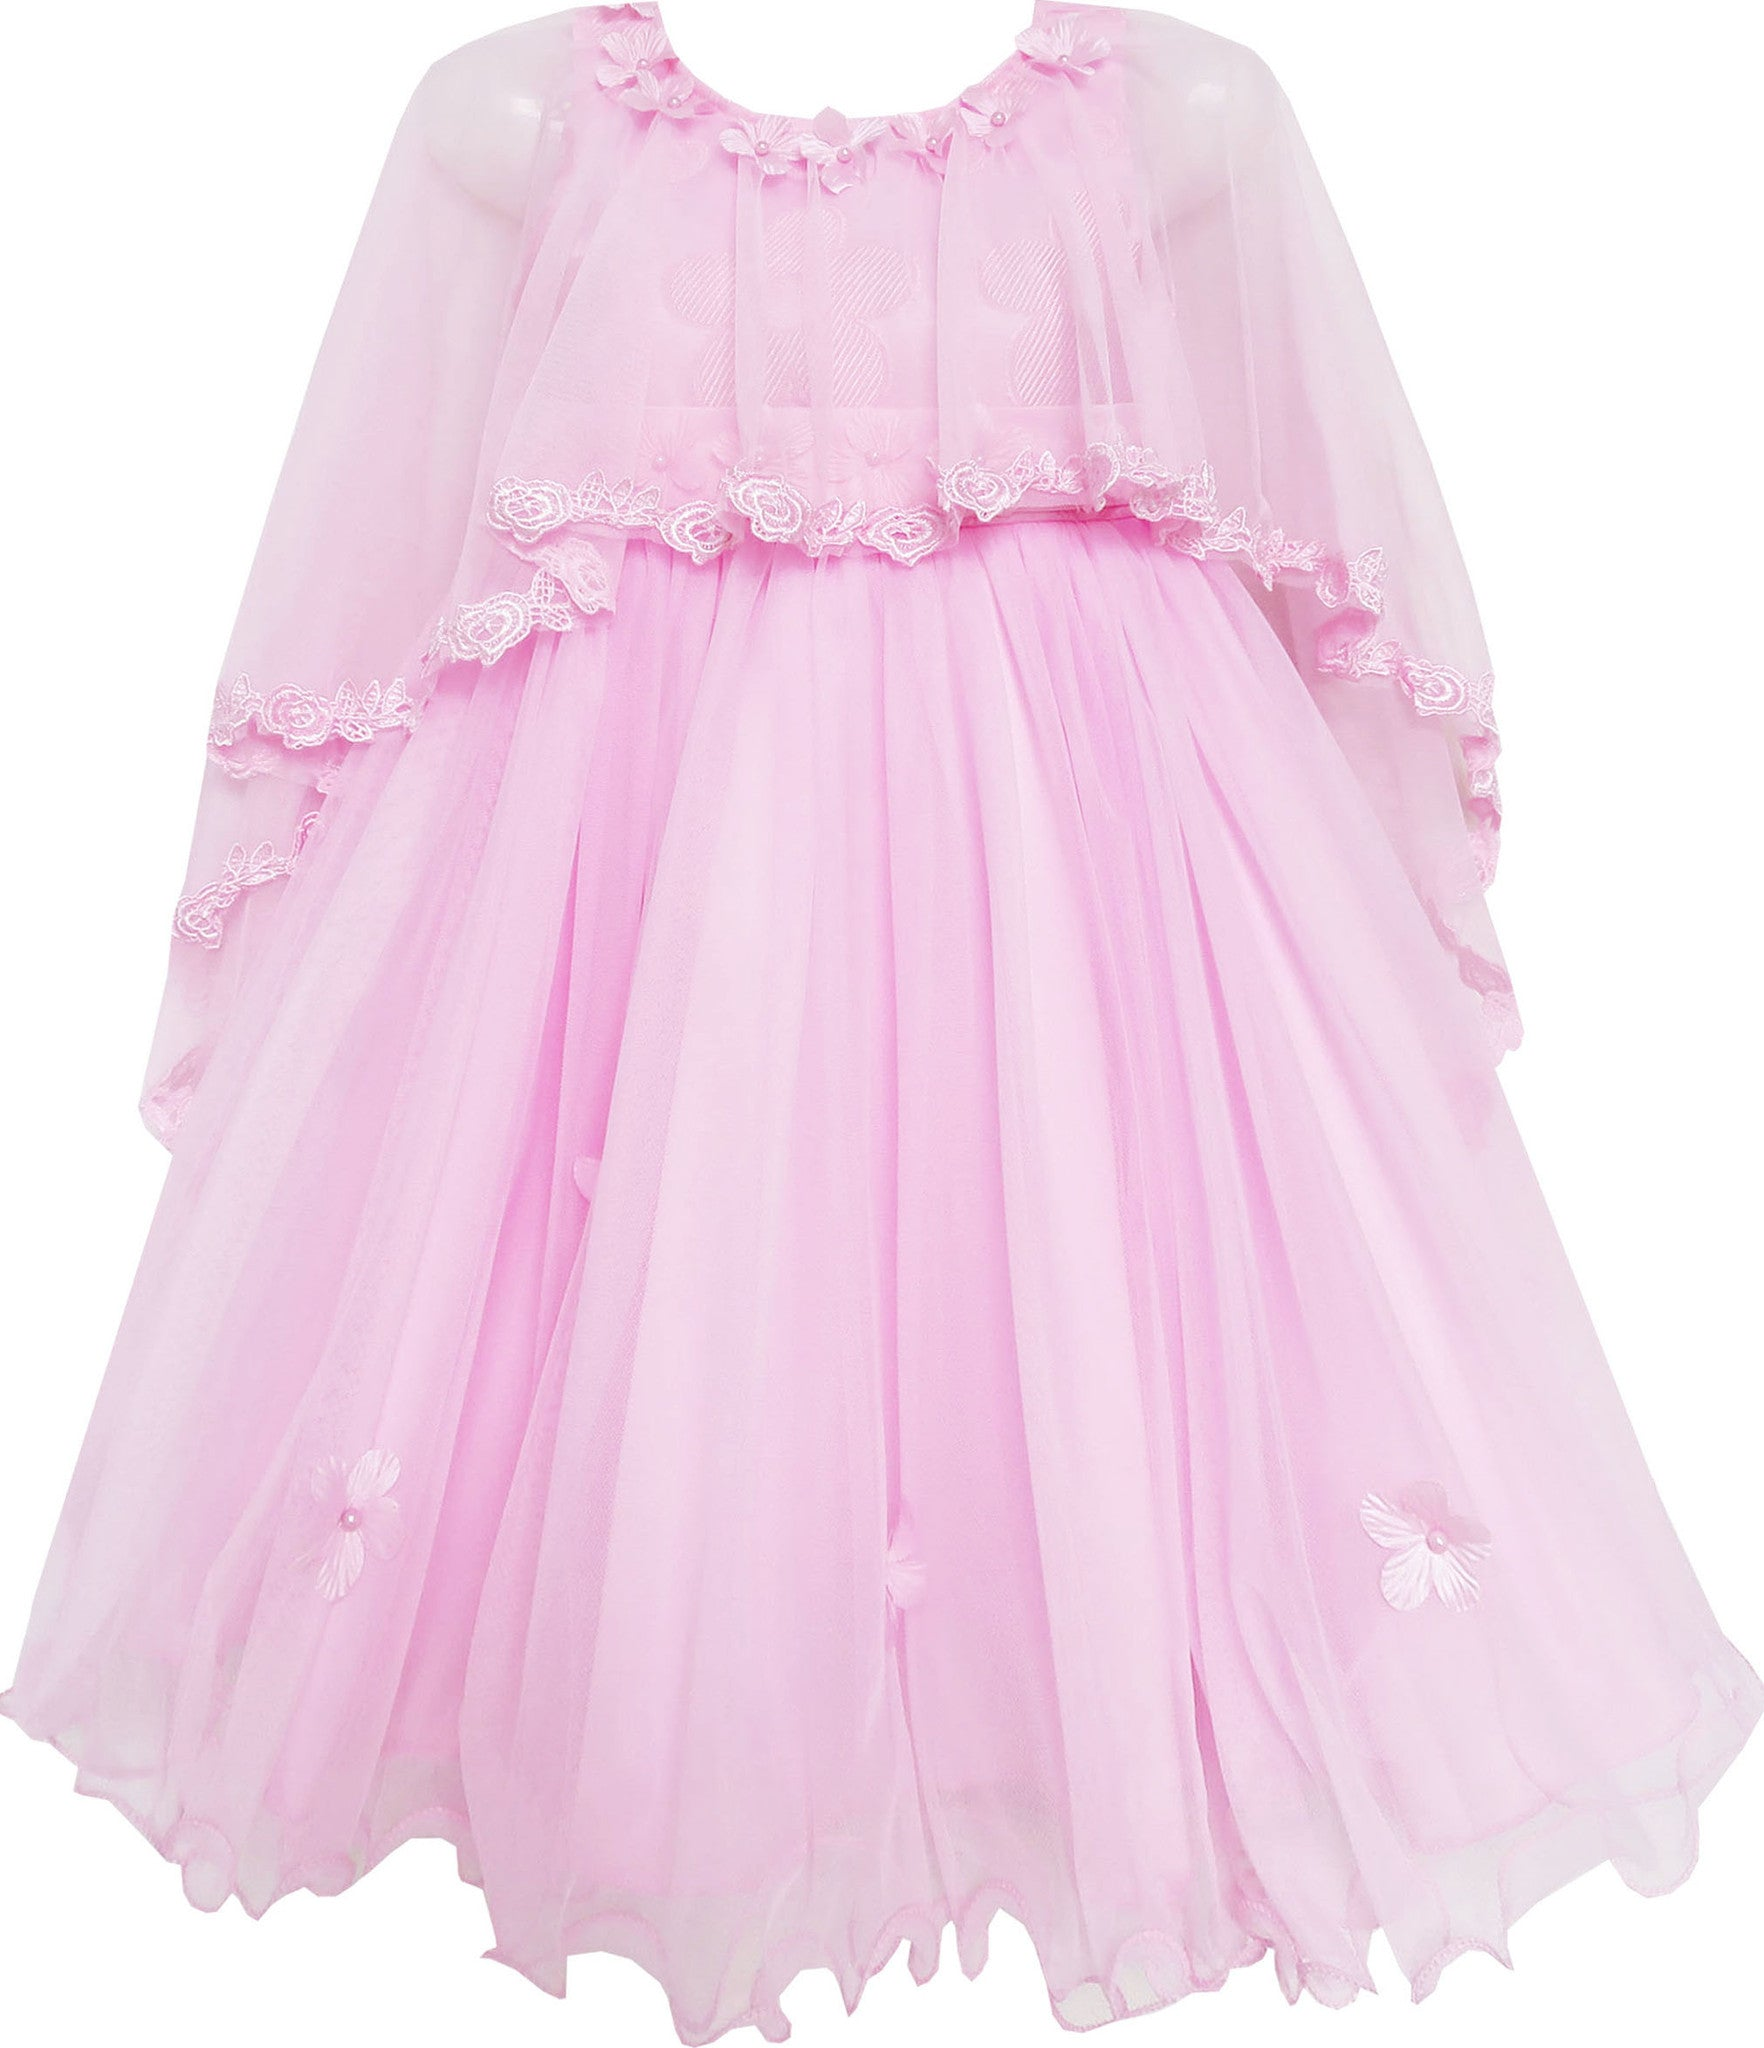 Sunny Fashion Girls Dress Knitted Cotton Stretch Tulle Overlay Flower Size 4-10